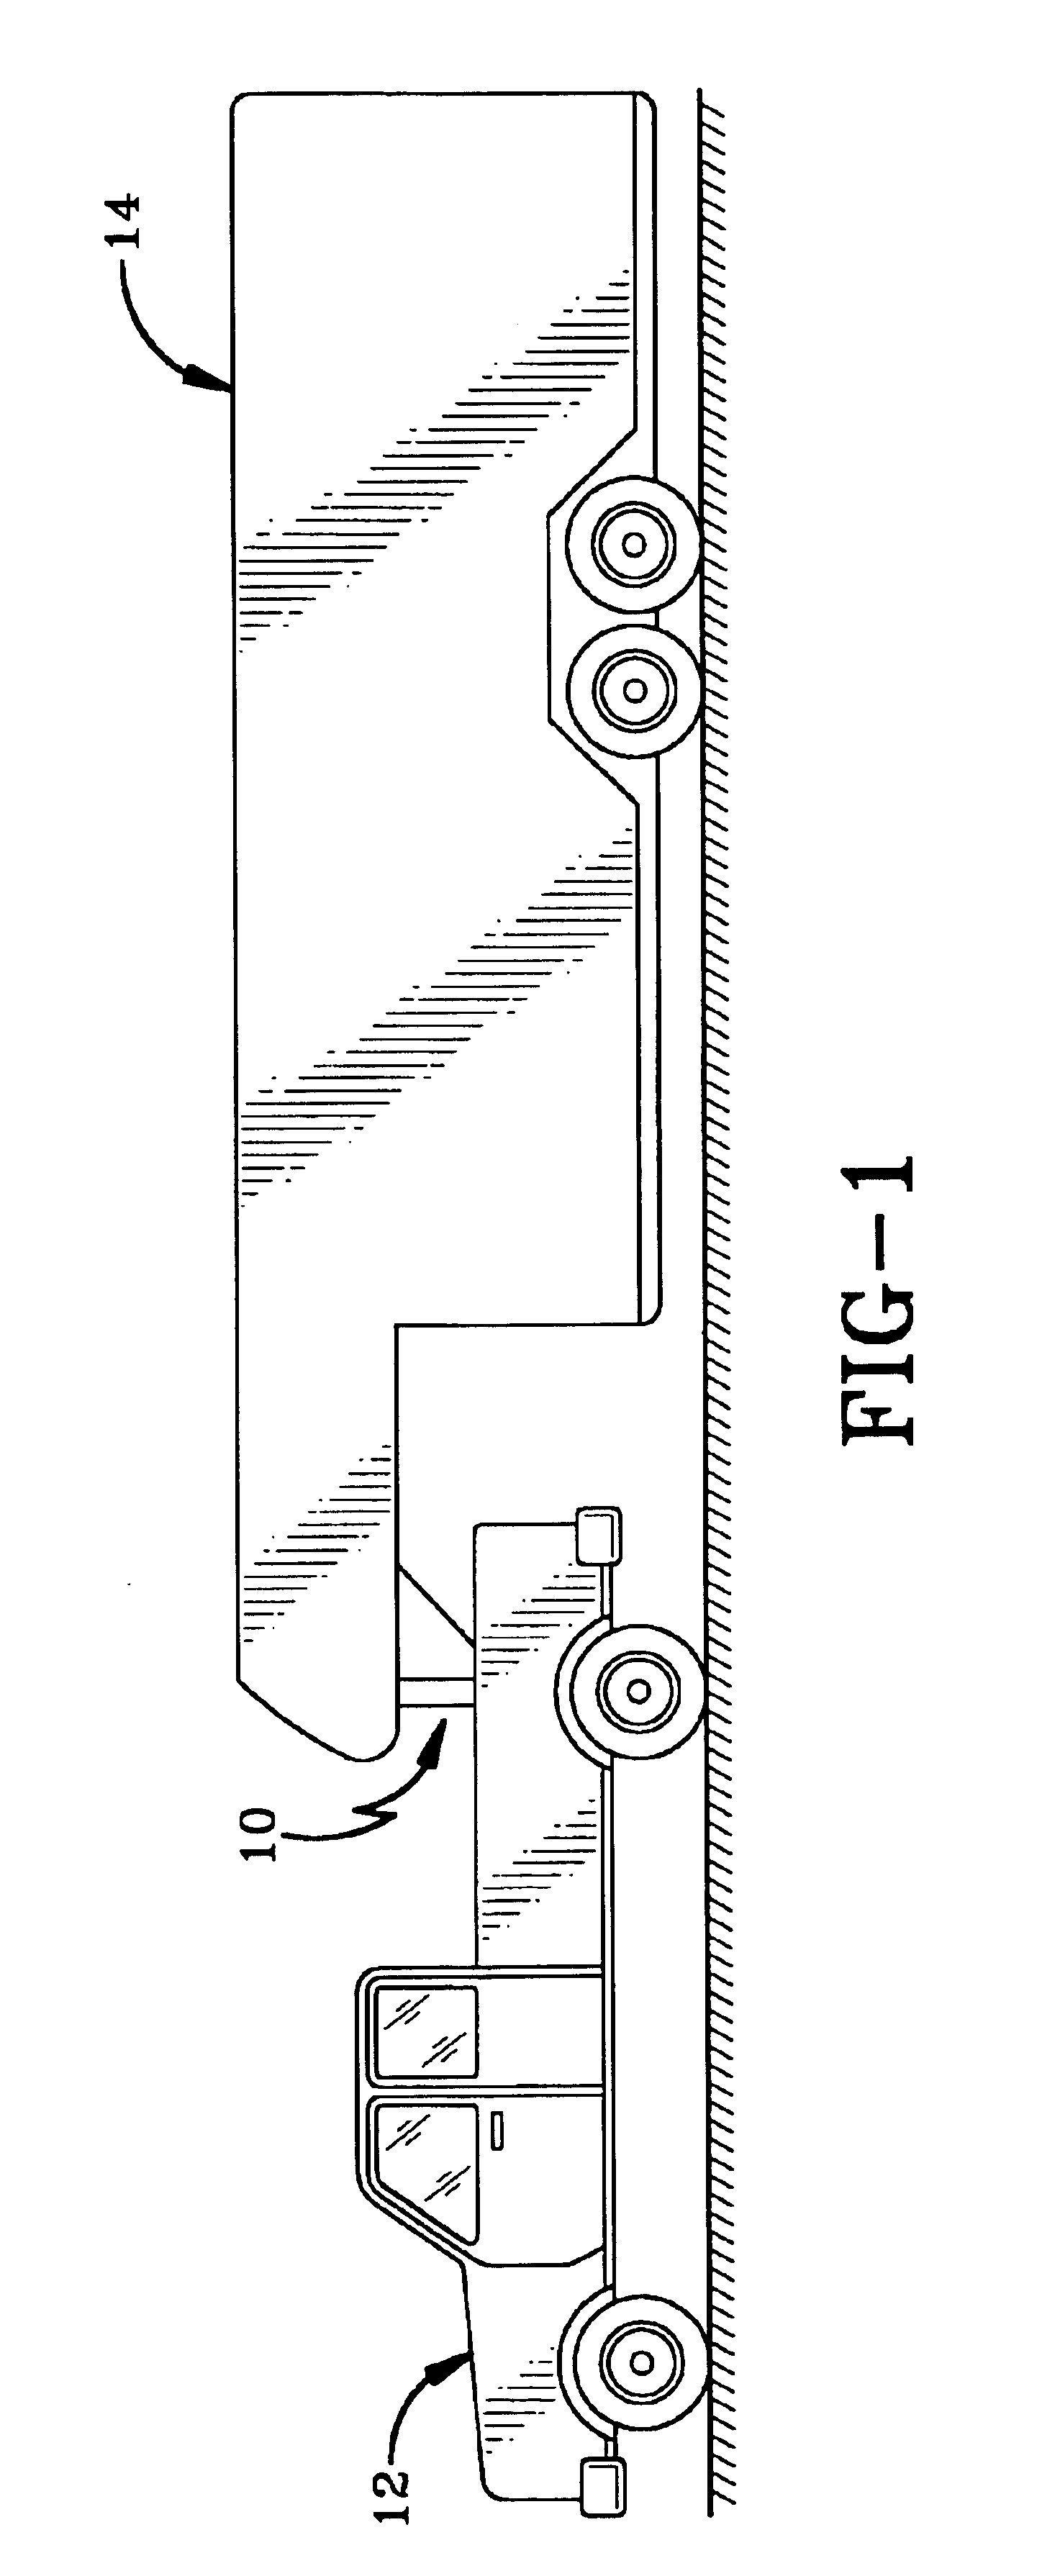 patent us6854757 - shock absorbing trailer hitch